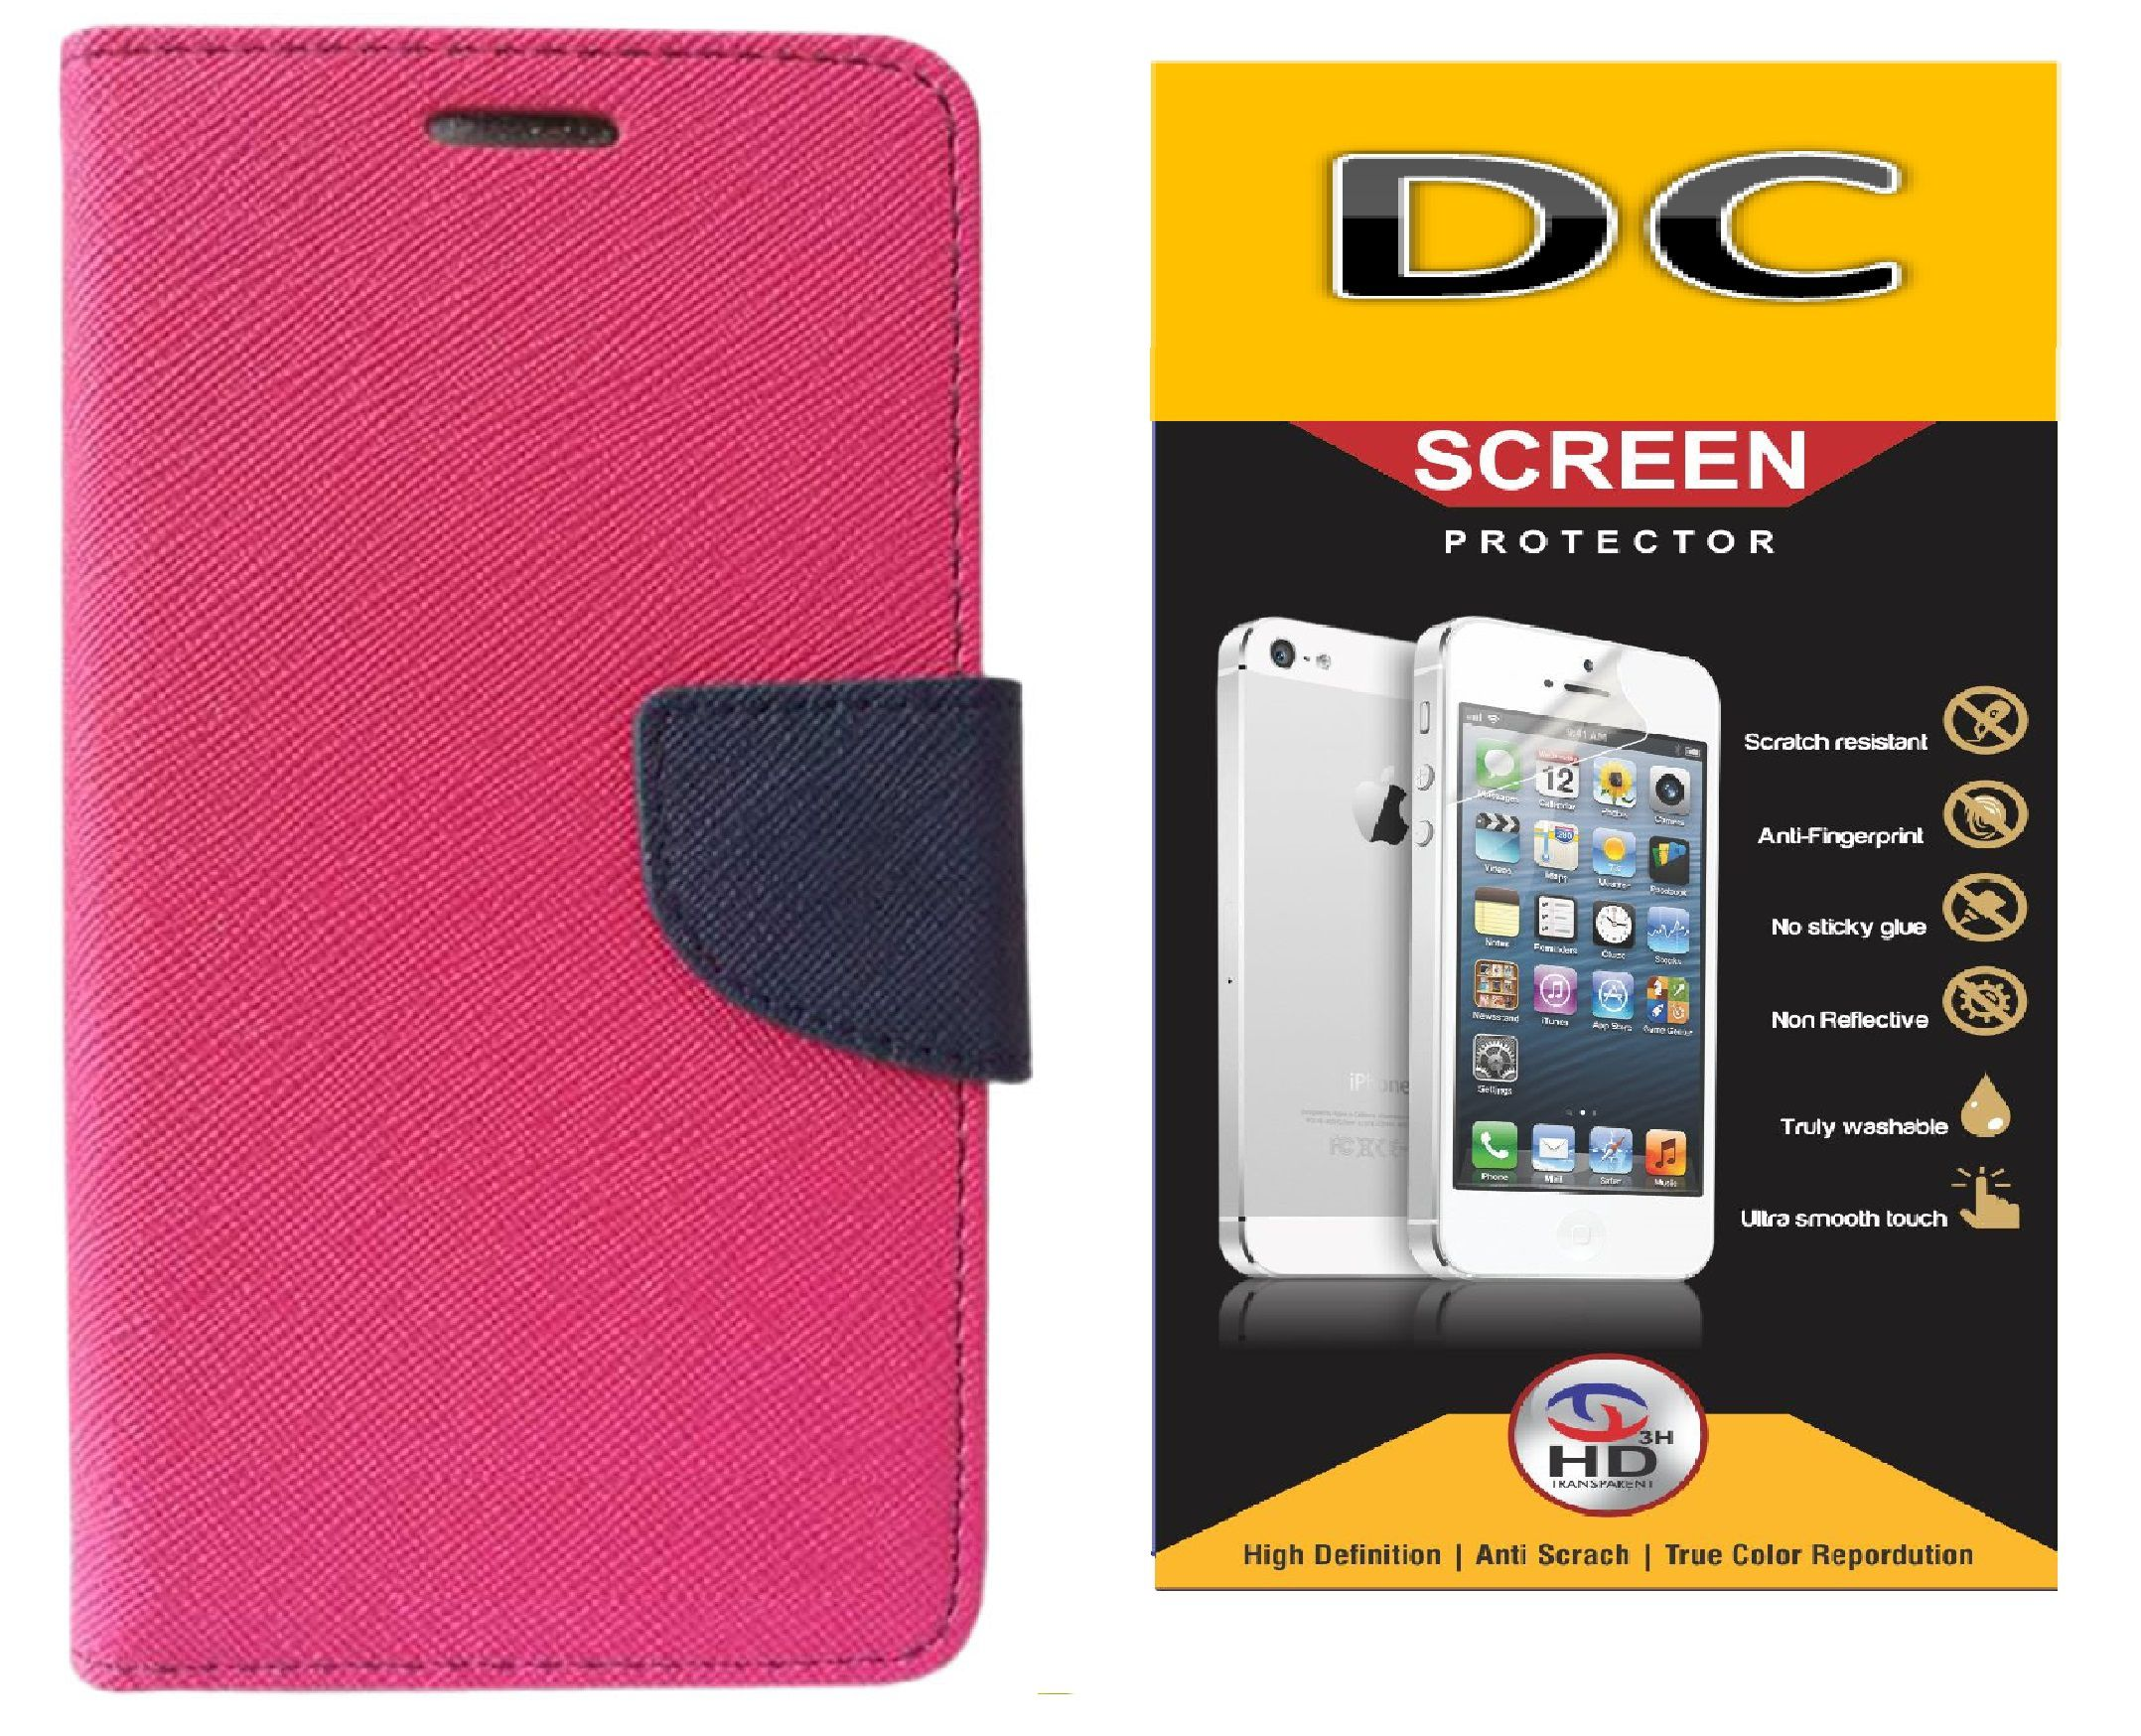 Doyen CreationsFlip CoversAnd Tempered GlassFor Samsung Galaxy S3